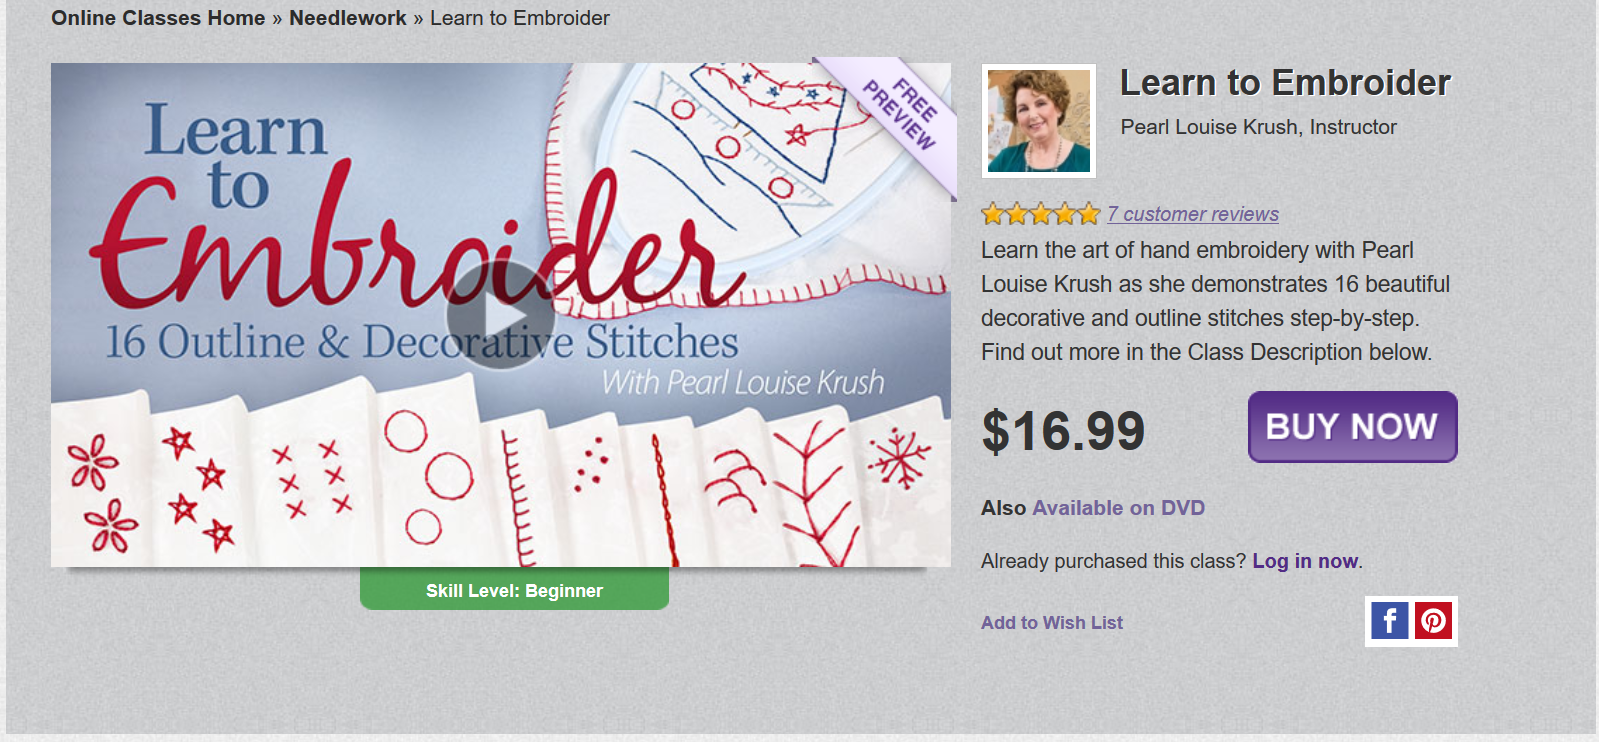 Online Embroidery Classes for Beginners - Swoodson Says